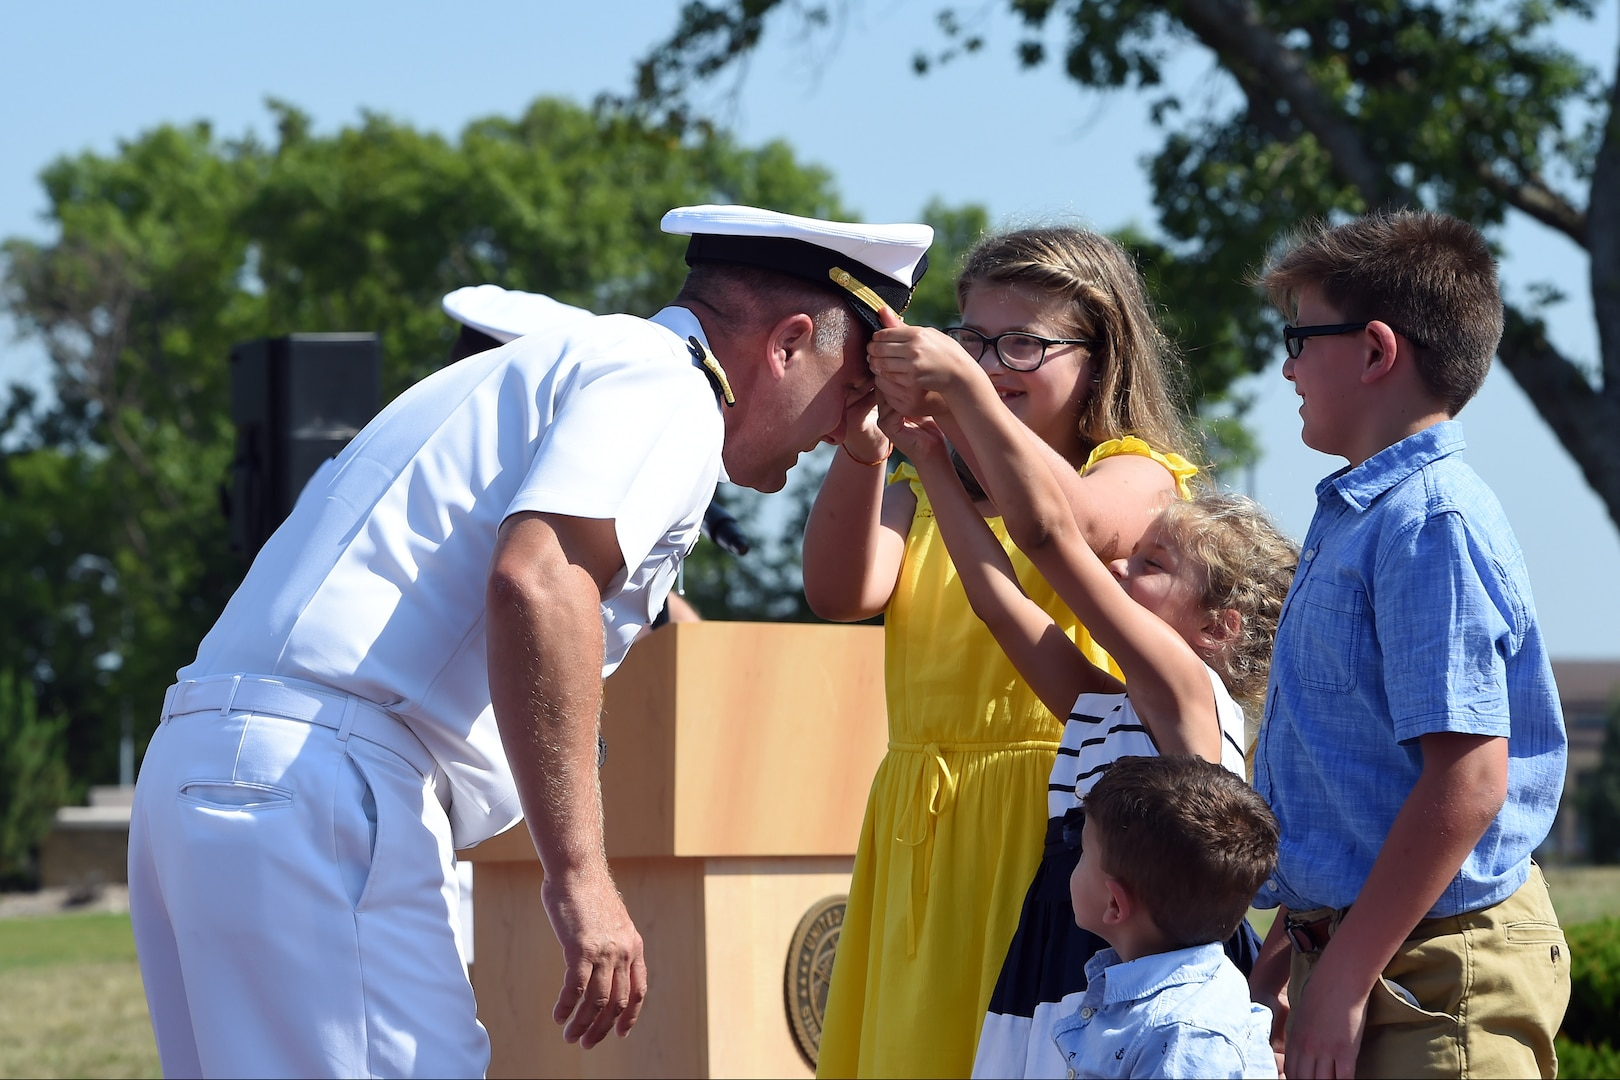 U.S. Navy Rear Adm. John Spencer's daughters don his new combination cover with golden oak leaf during his promotion ceremony on the missile deck at U.S. Strategic Command (USSTRATCOM) headquarters on Offutt Air Force Base, Neb., Aug. 9, 2018. Spencer is the executive assistant to U.S. Air Force Gen. John Hyten, commander of USSTRATCOM. His next assignment will be the director of Nuclear Support Directorate, Defense Threat Reduction Agency at Ft. Belvoir, Va.  USSTRATCOM has global responsibilities assigned through the Unified Command Plan that include strategic deterrence, nuclear operations, space operations, joint electromagnetic spectrum operations, global strike, missile defense, and analysis and targeting. (U.S. Navy photo by Mass Communication Specialist 1st Class Julie R. Matyascik/Released)